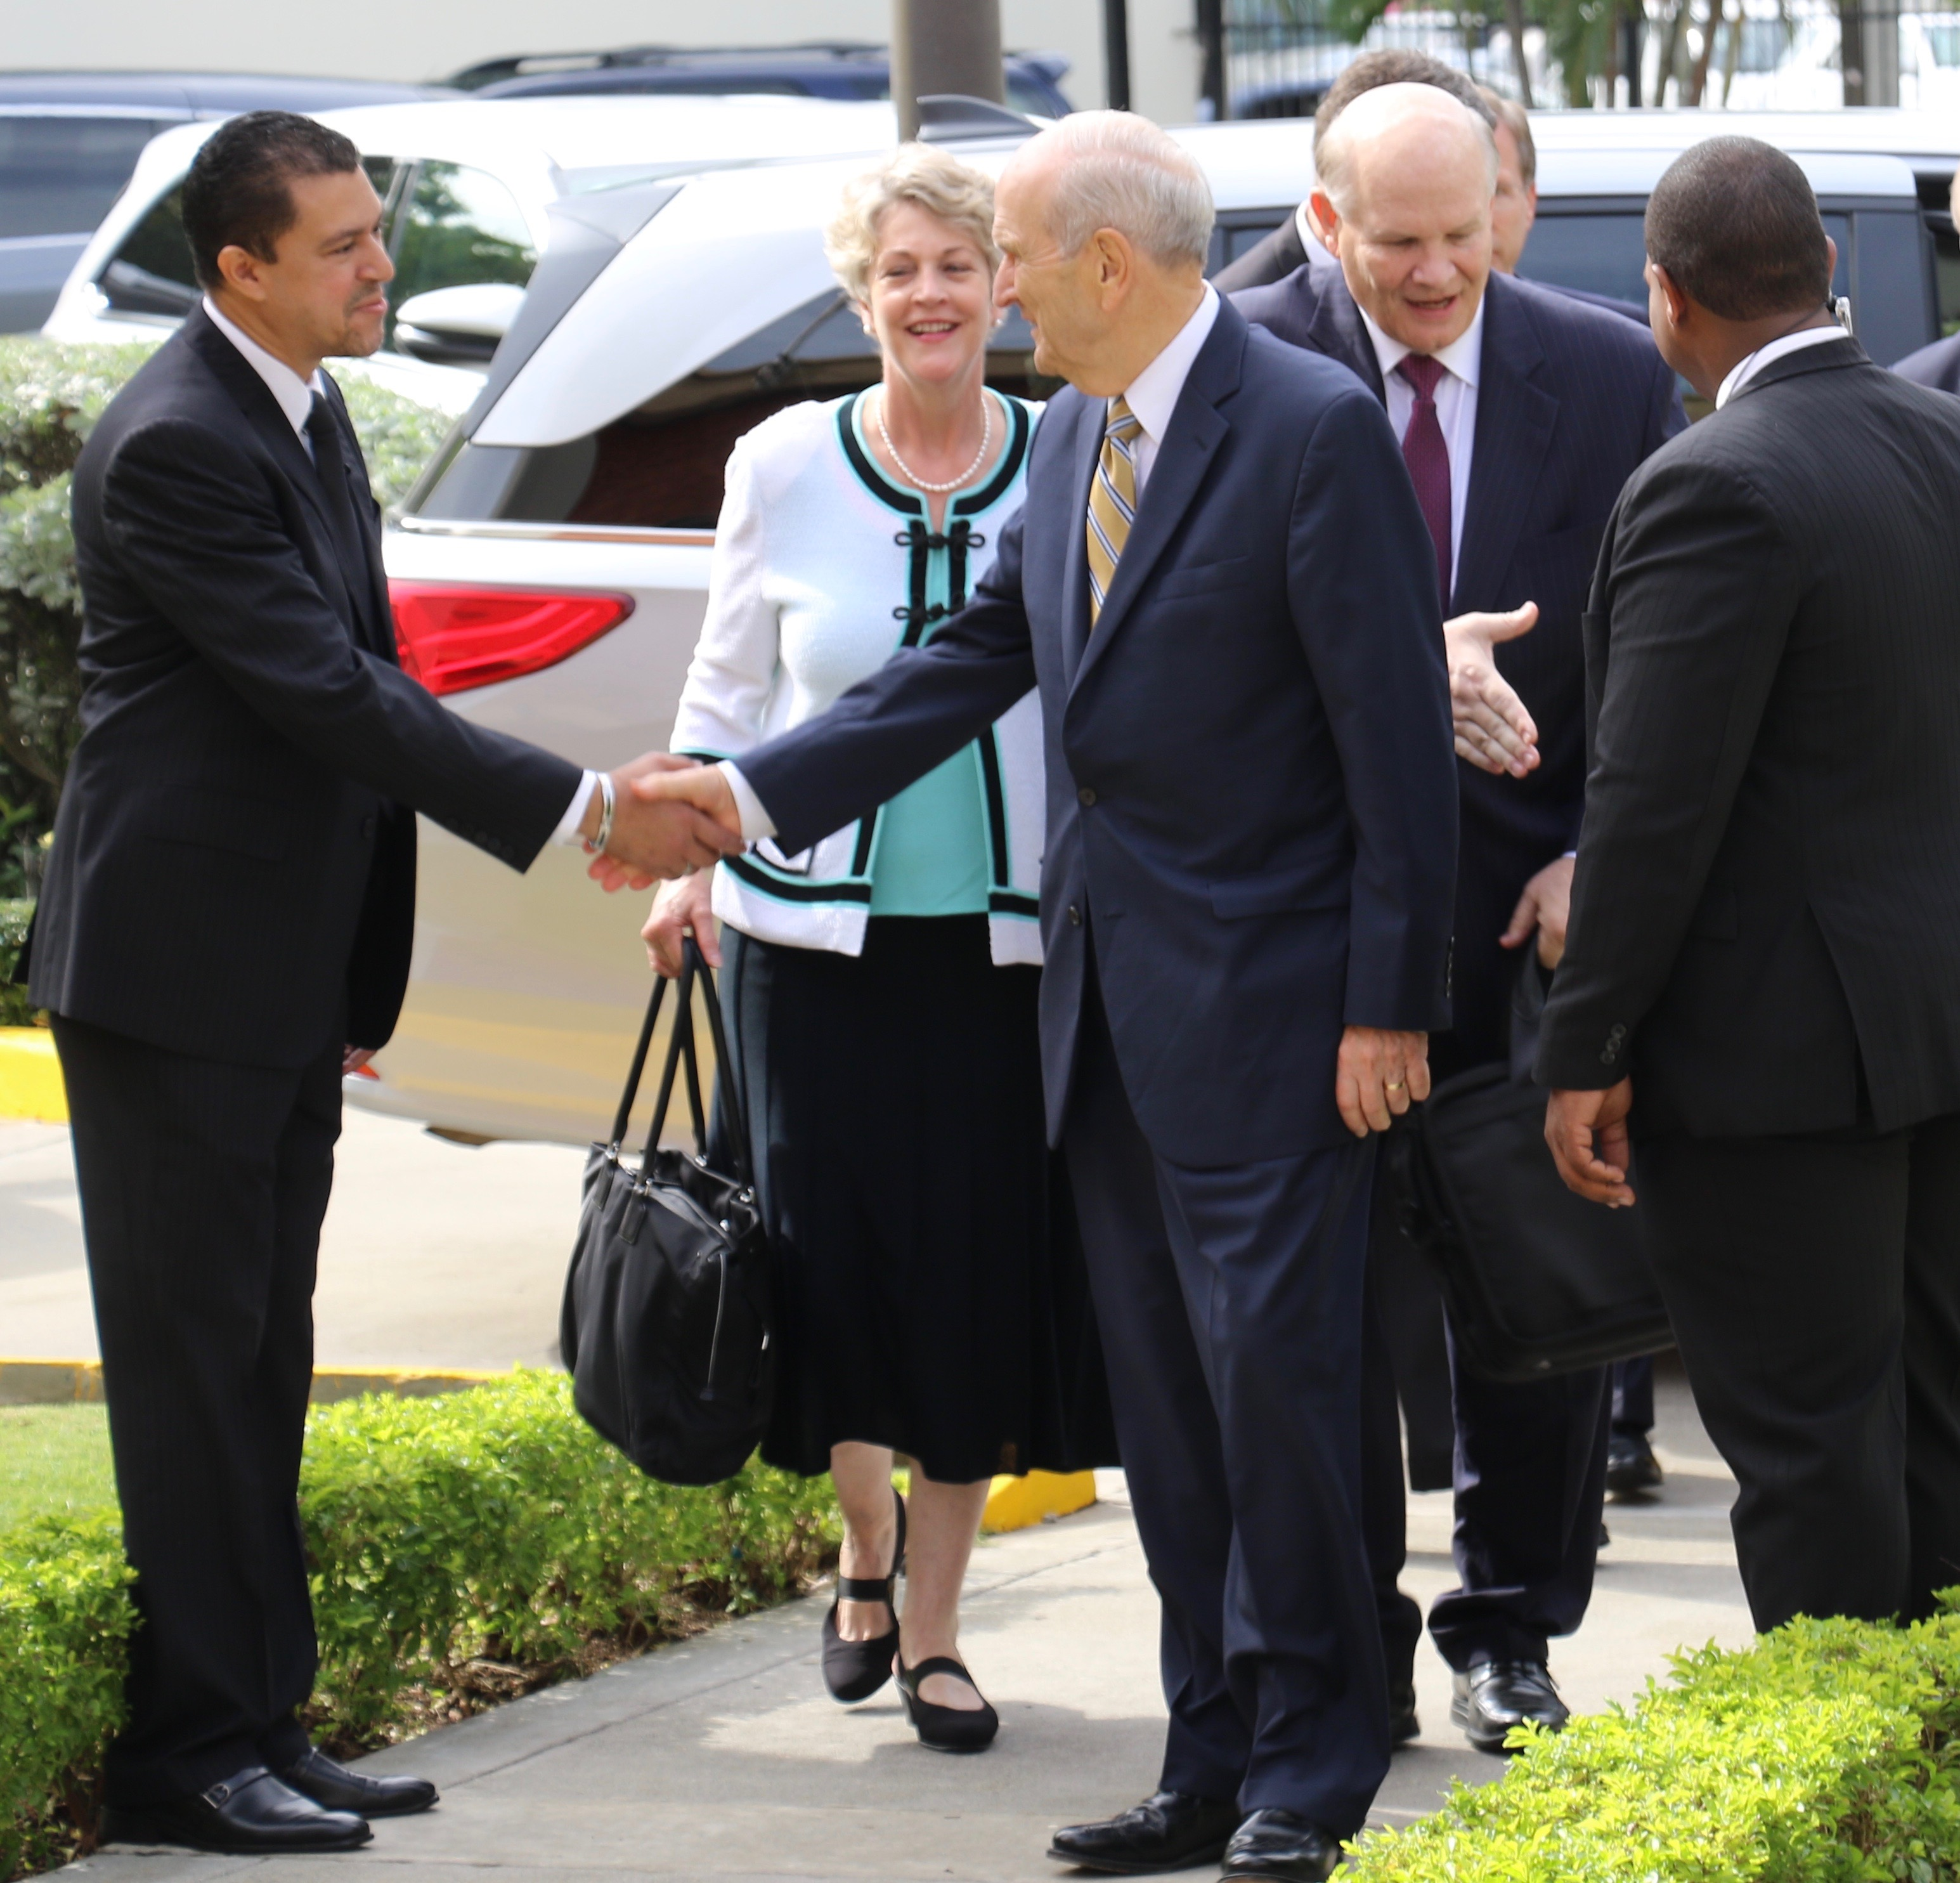 President Russell M. Nelson, along with Elder Dale G. Renlund and Sister Ruth Renlund, arrive for a Sept. 1, 2018, missionary meeting in Santo Domingo, Dominican Republic.